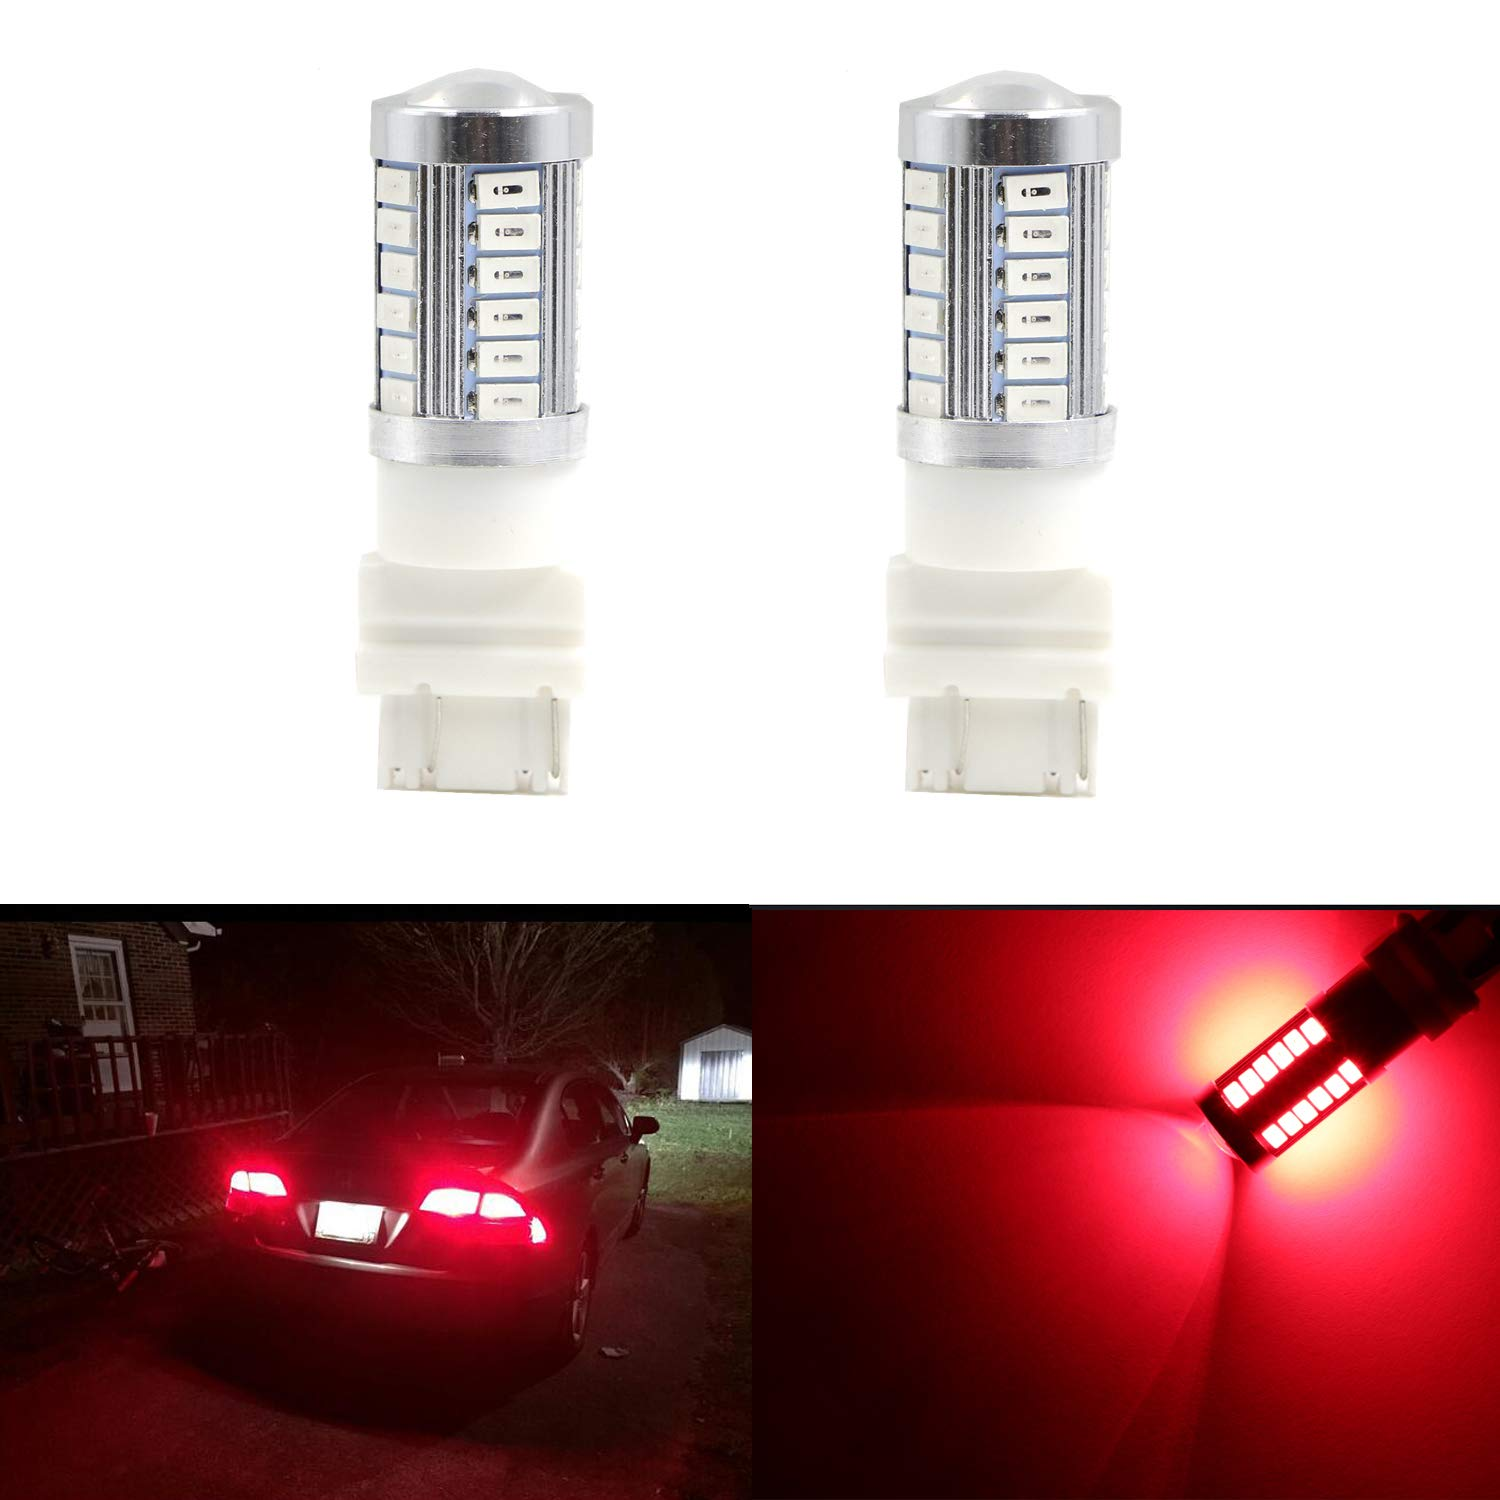 1156 1073 1095 1195 Newest Extremely Bright Red w/33 SMD LED Bulbs for Tail Lights Brake Lights (Pack of 2) youxmoto